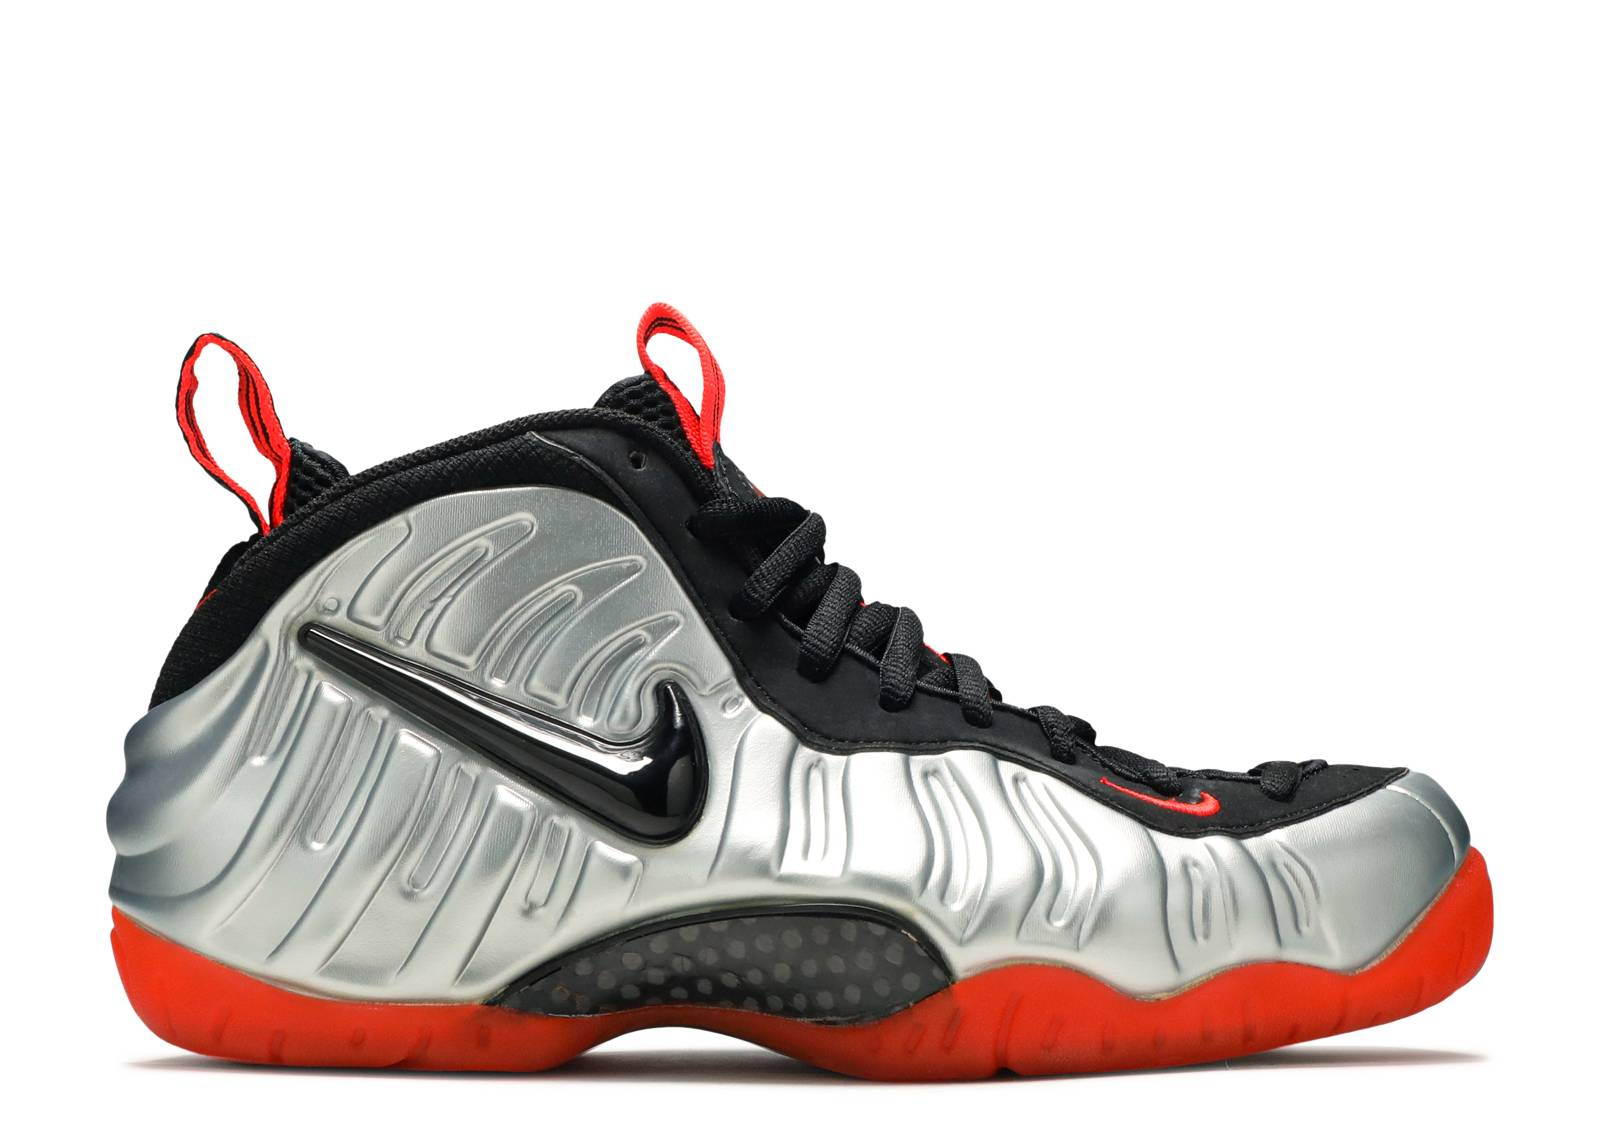 quality design 9af8f 844d5 nike. air foamposite pro